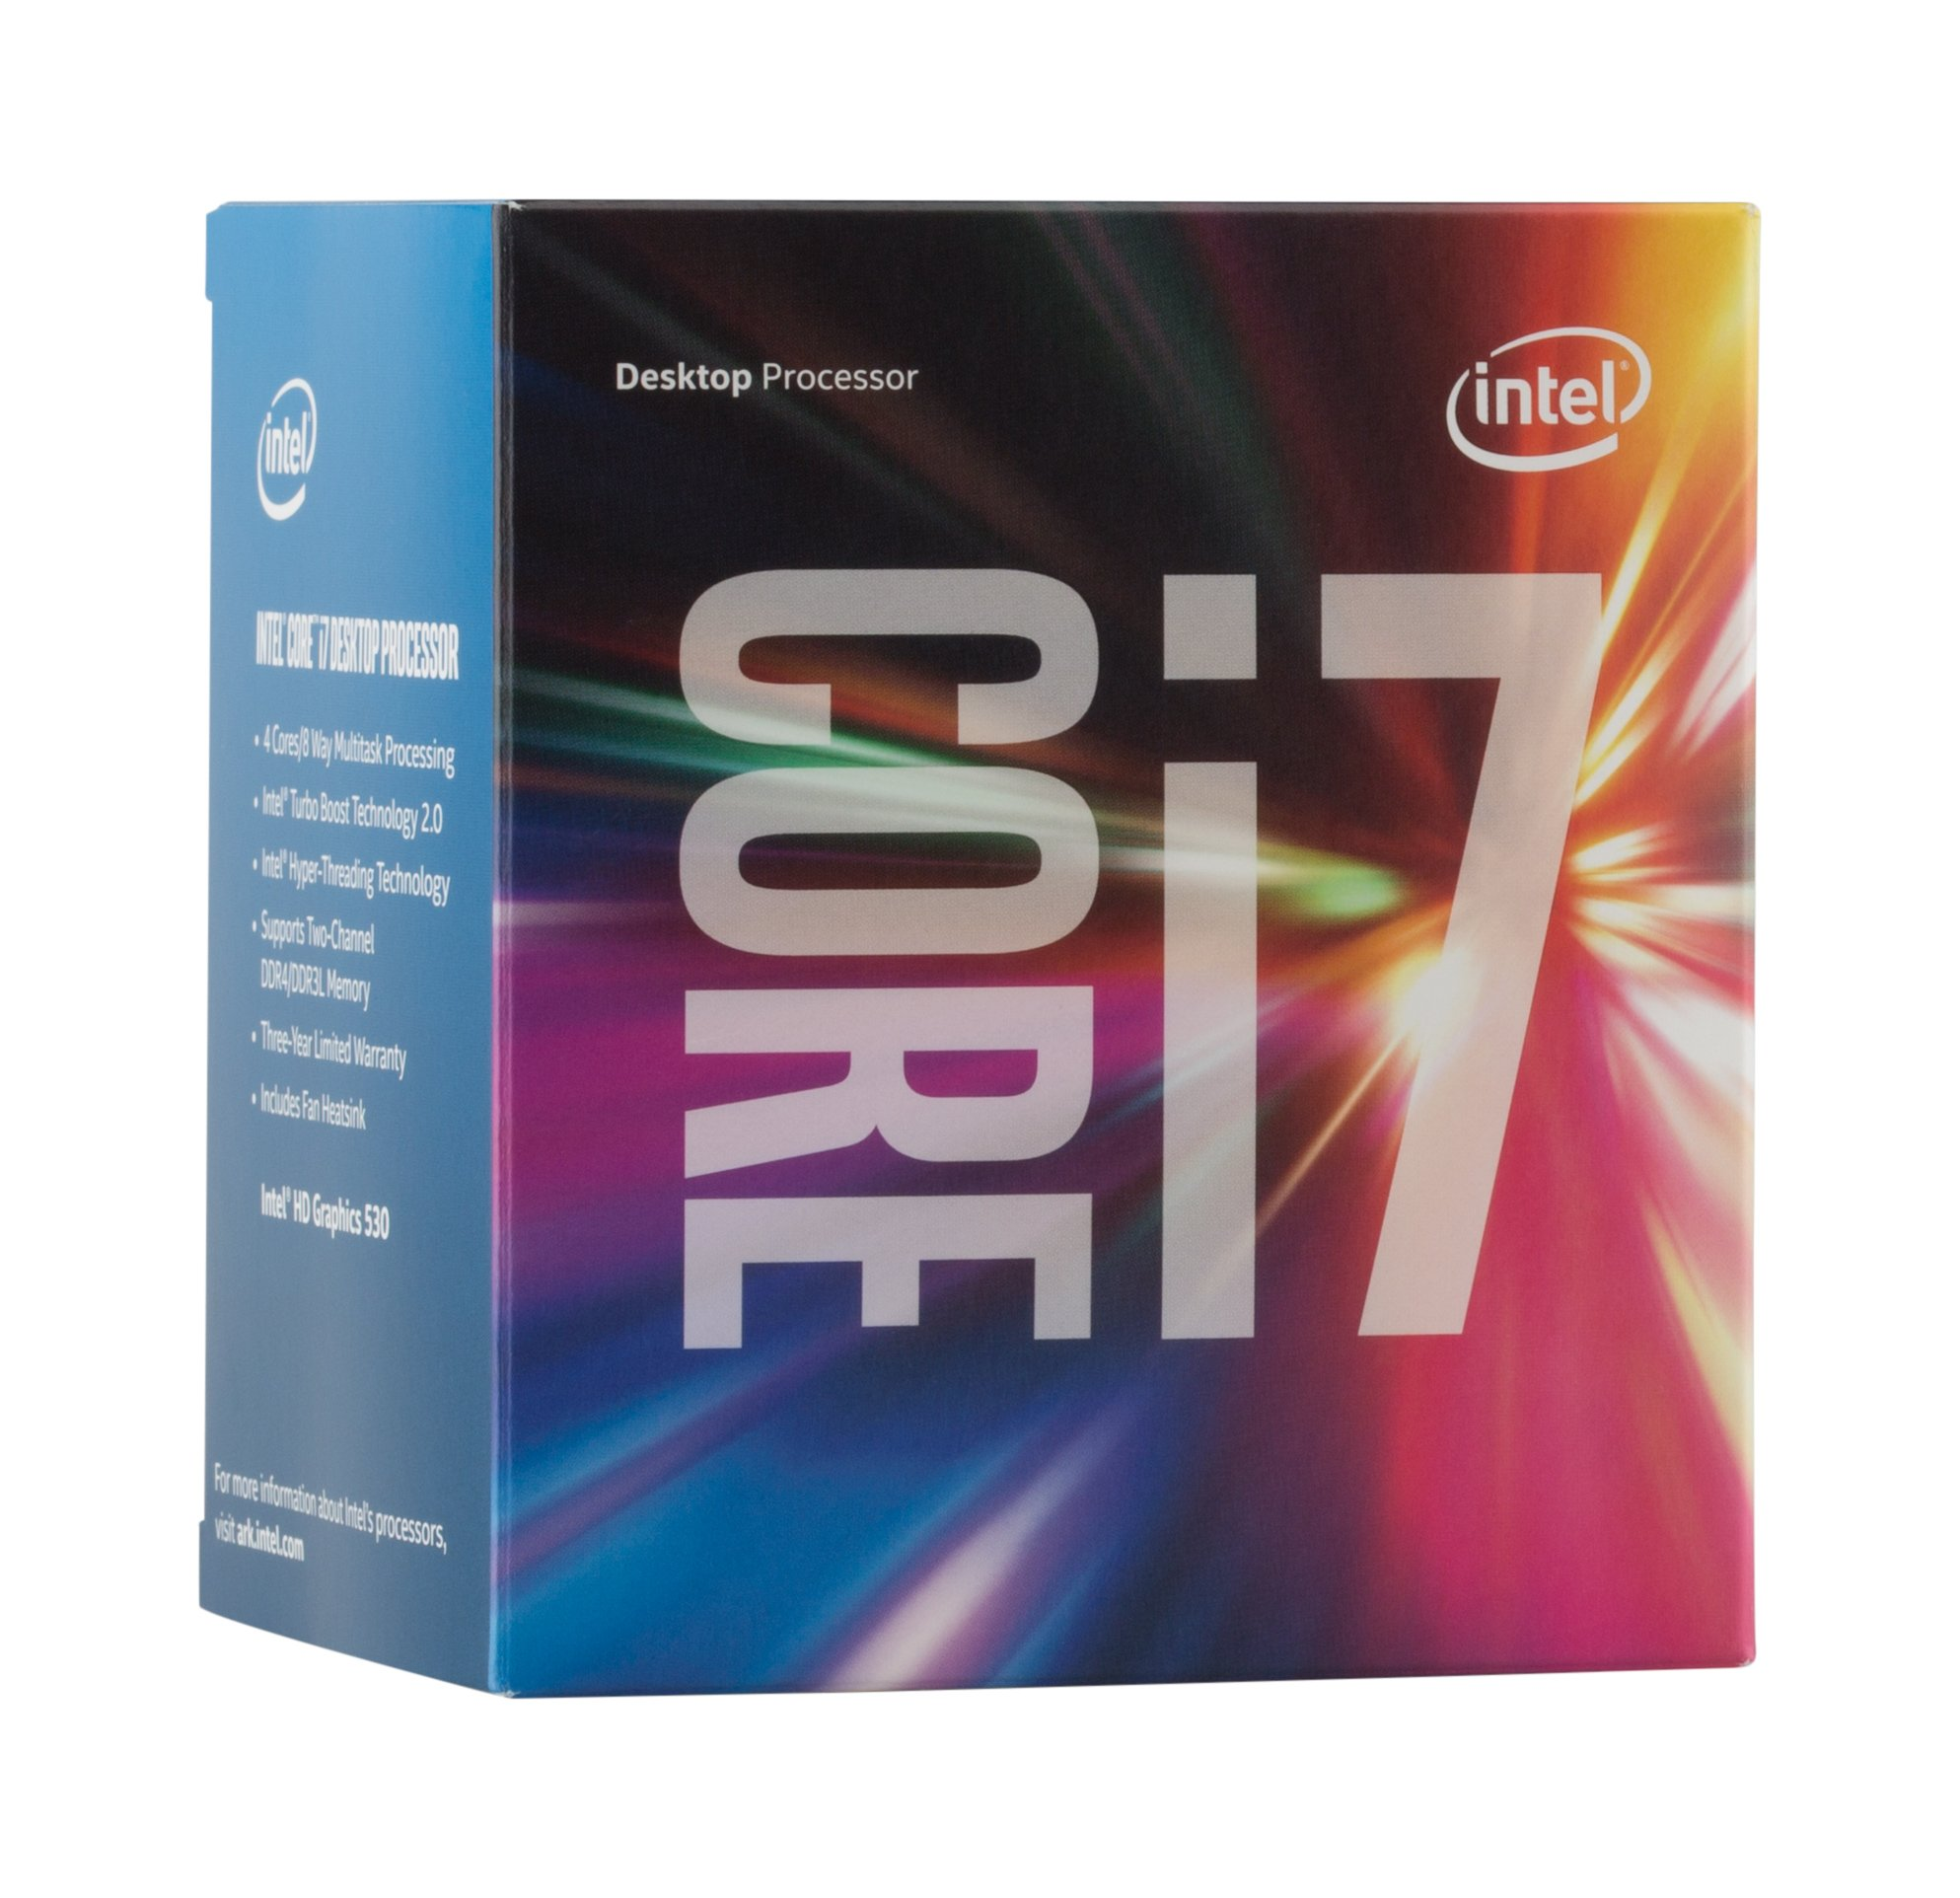 Intel Boxed Core I7-6700 FC-LGA14C 3.40 GHz 8 M Cache 4 LGA